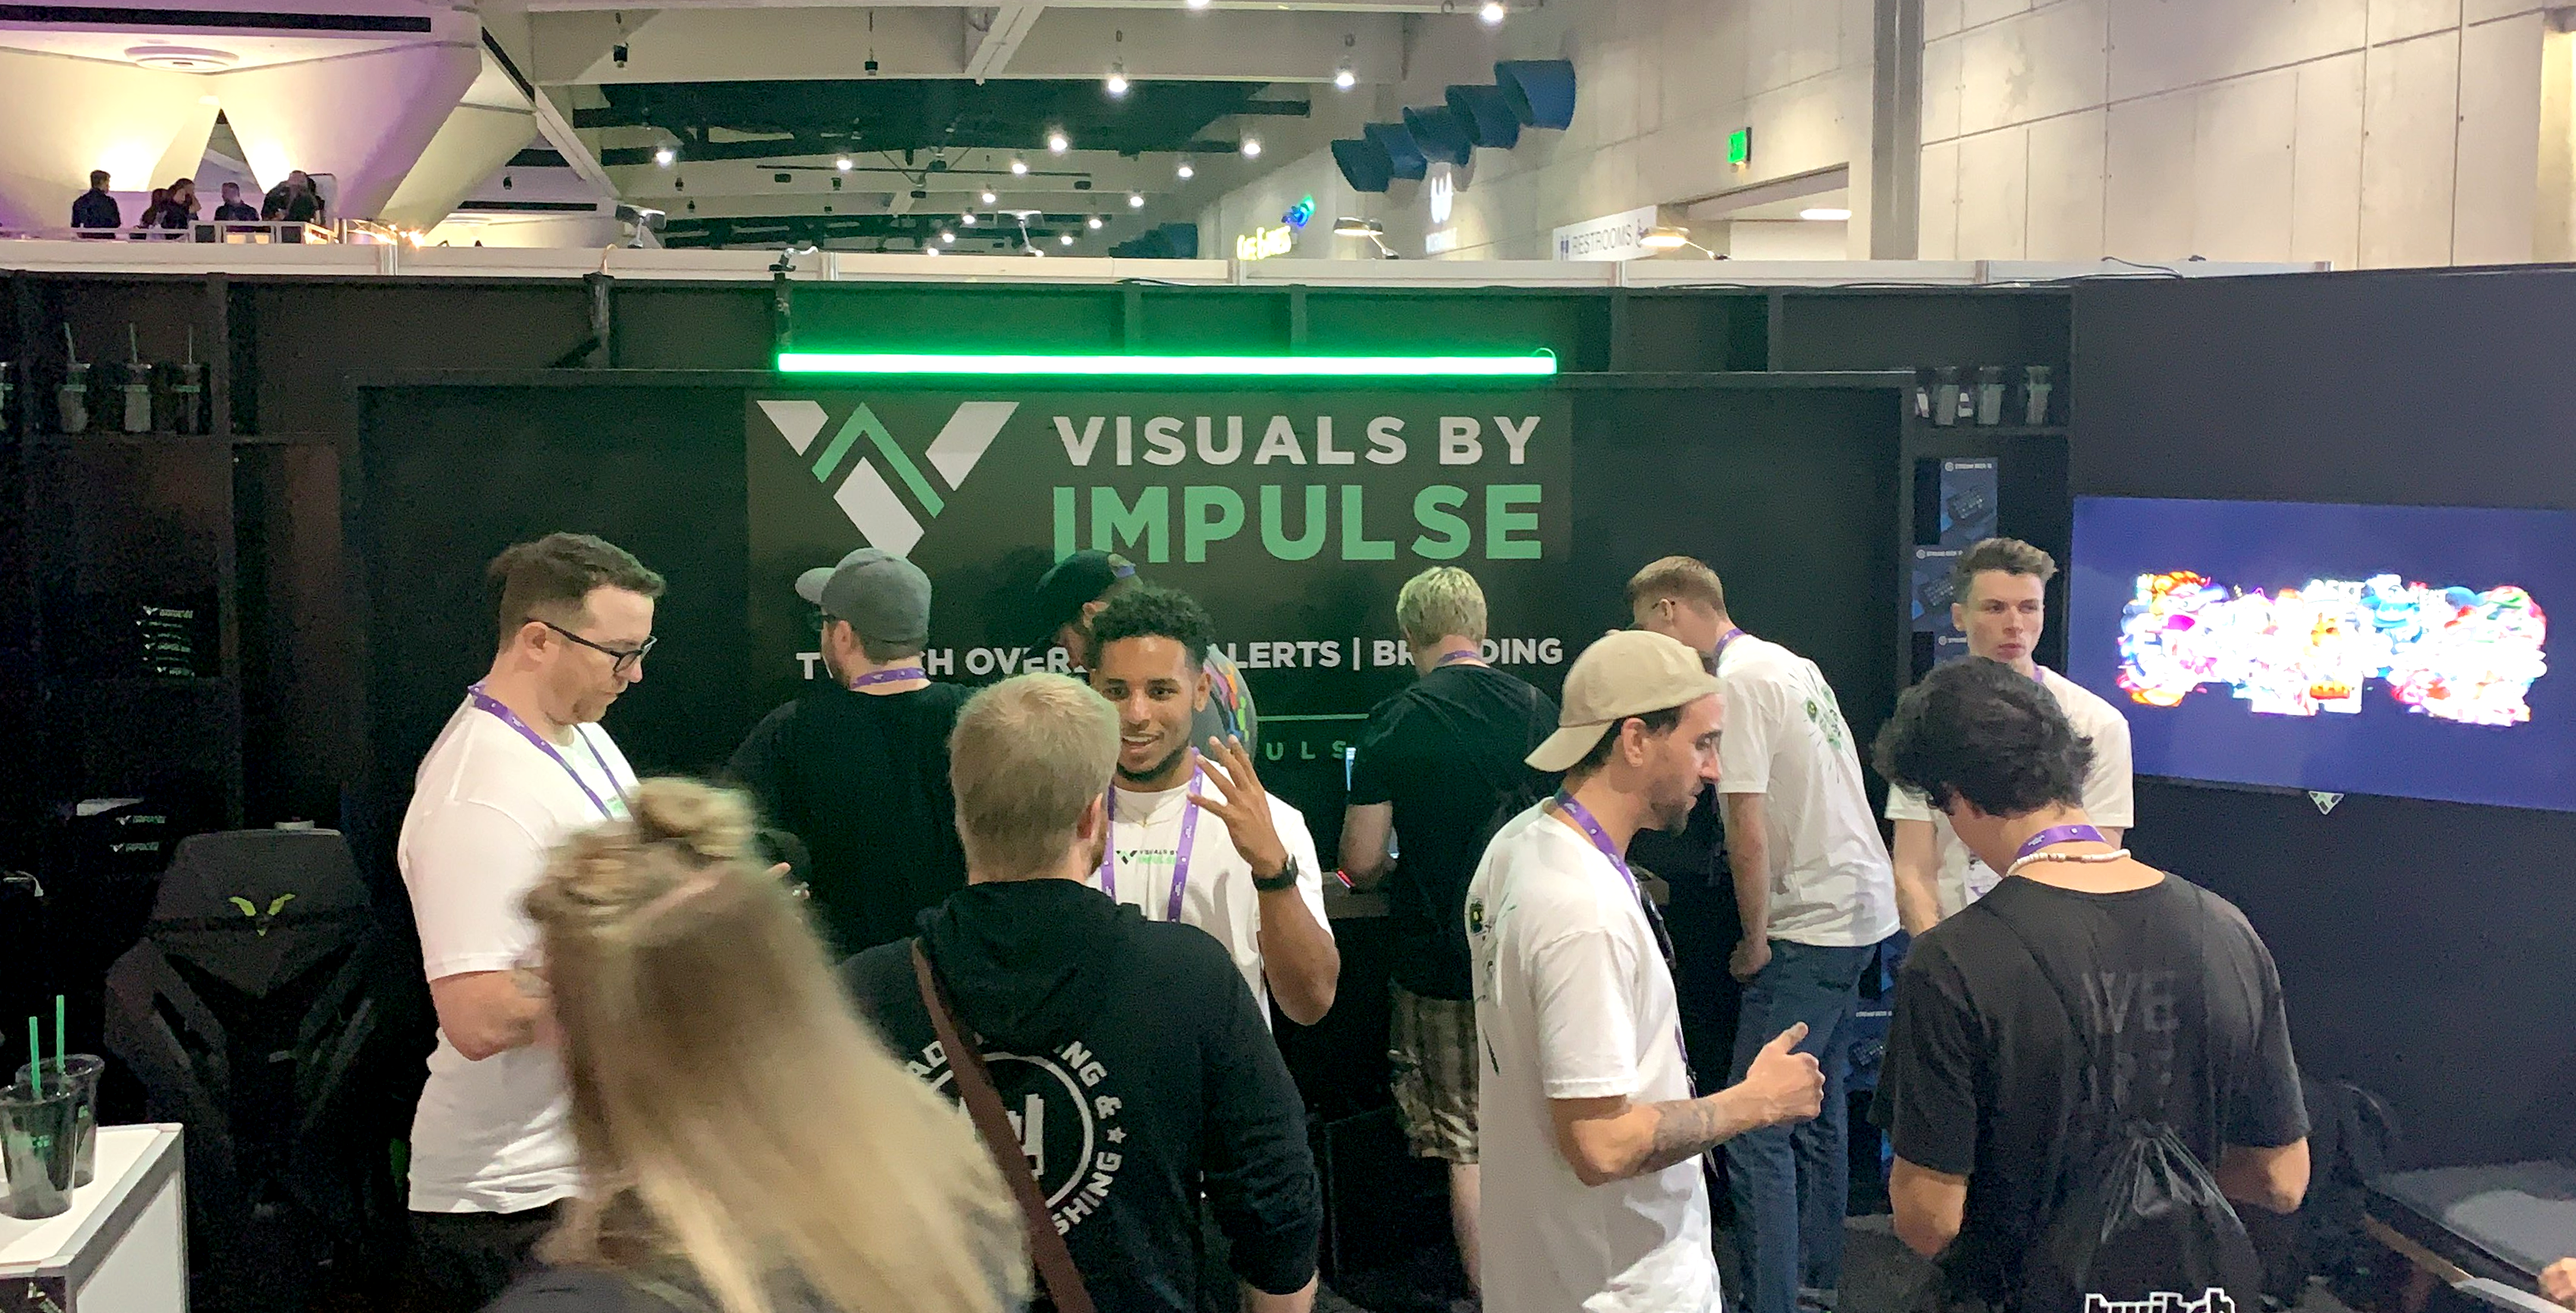 vbi booth and employees chatting with customers at twitchcon 2019